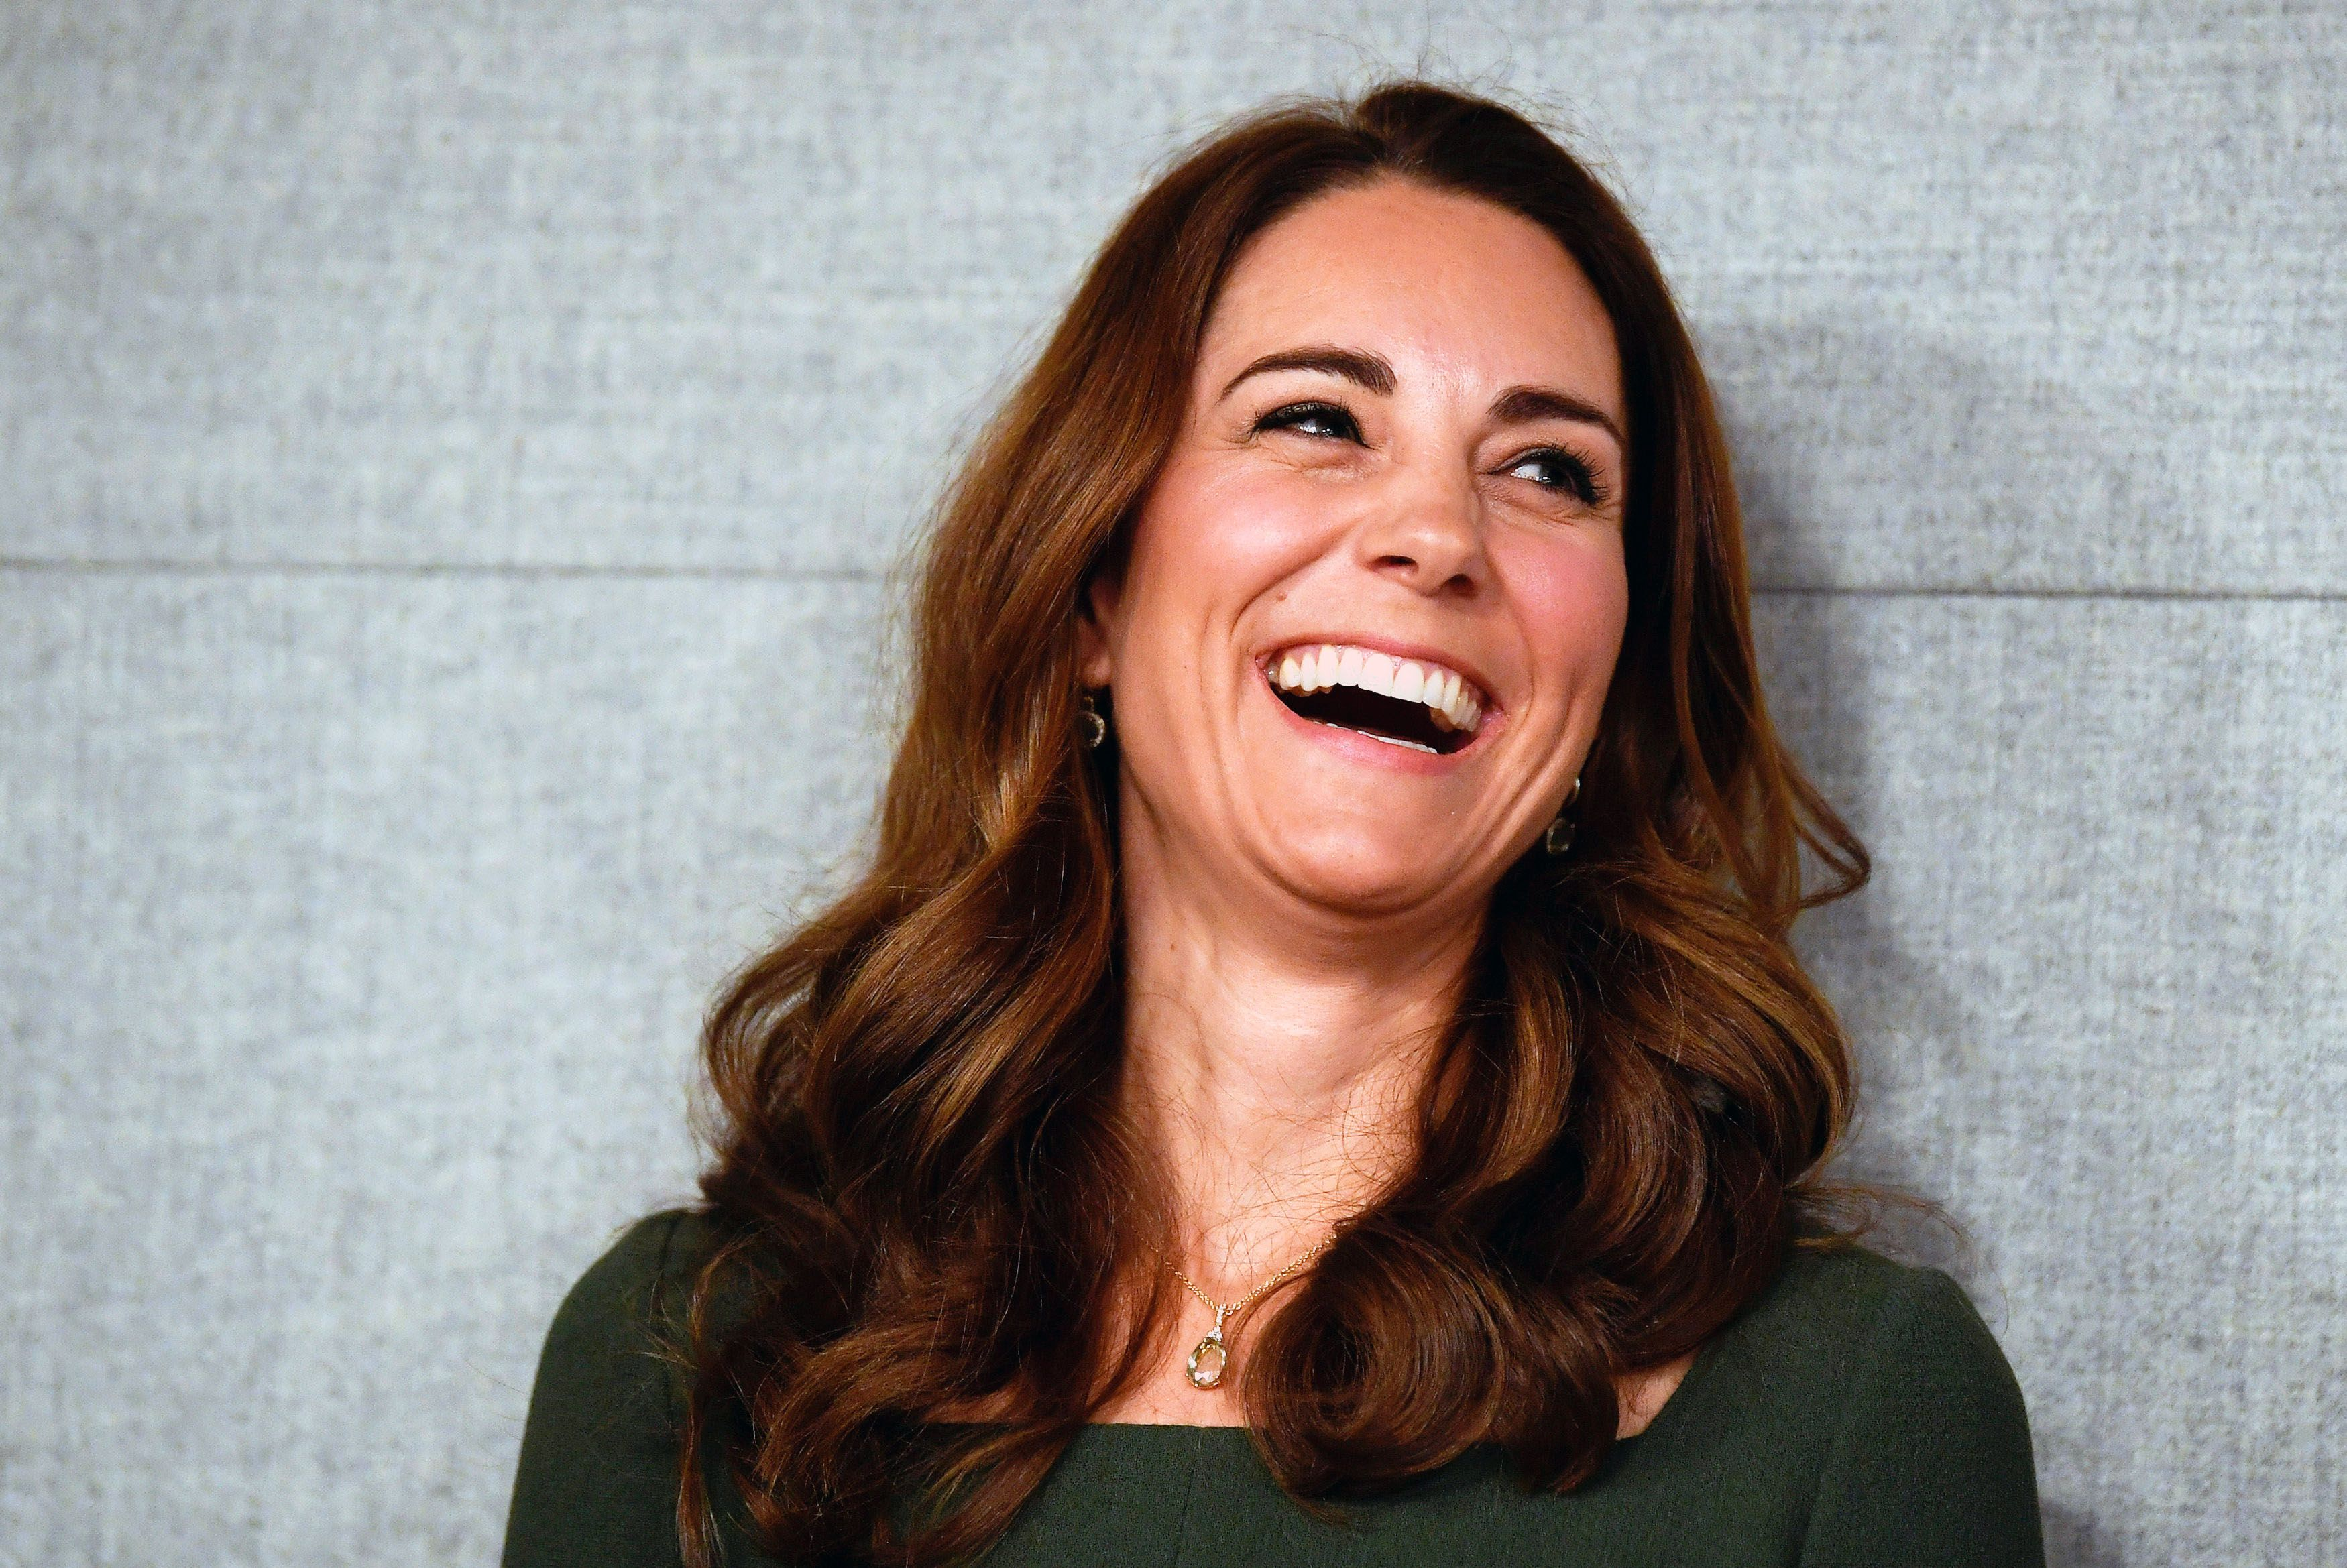 Kate Middleton Starred in Her School Musical When She Was 11 Years Old—And There's Video to Prove It